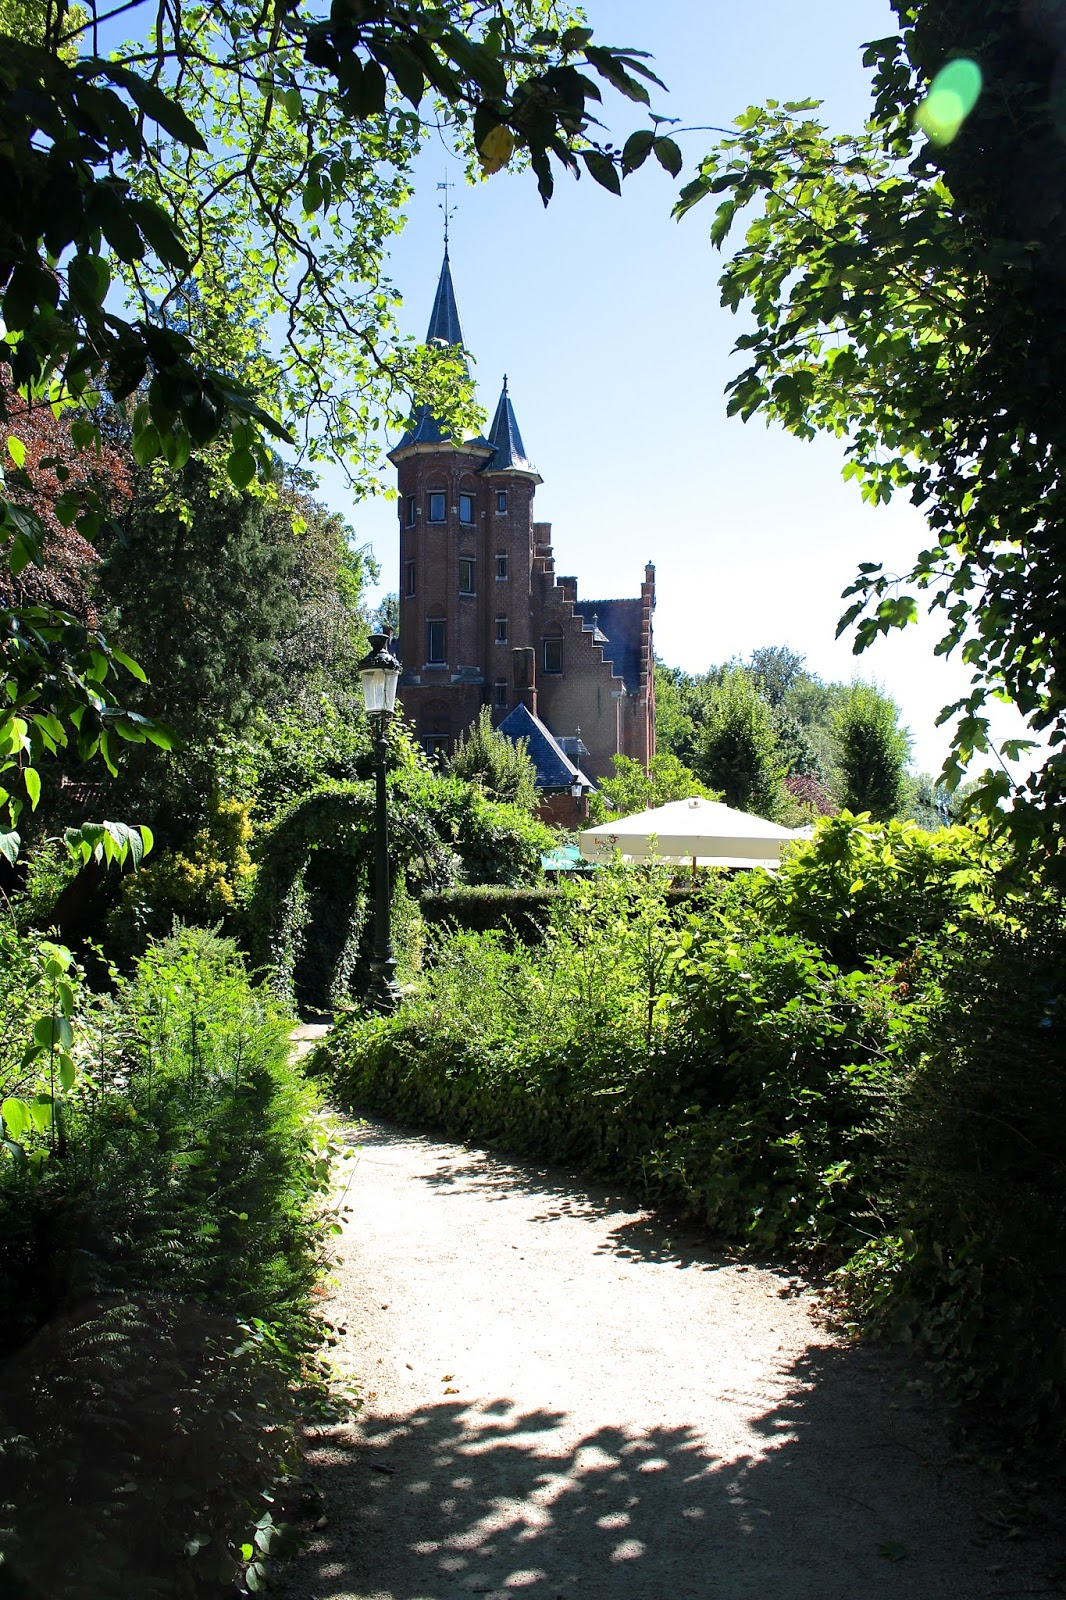 Hidden gems in the magical city of Bruges